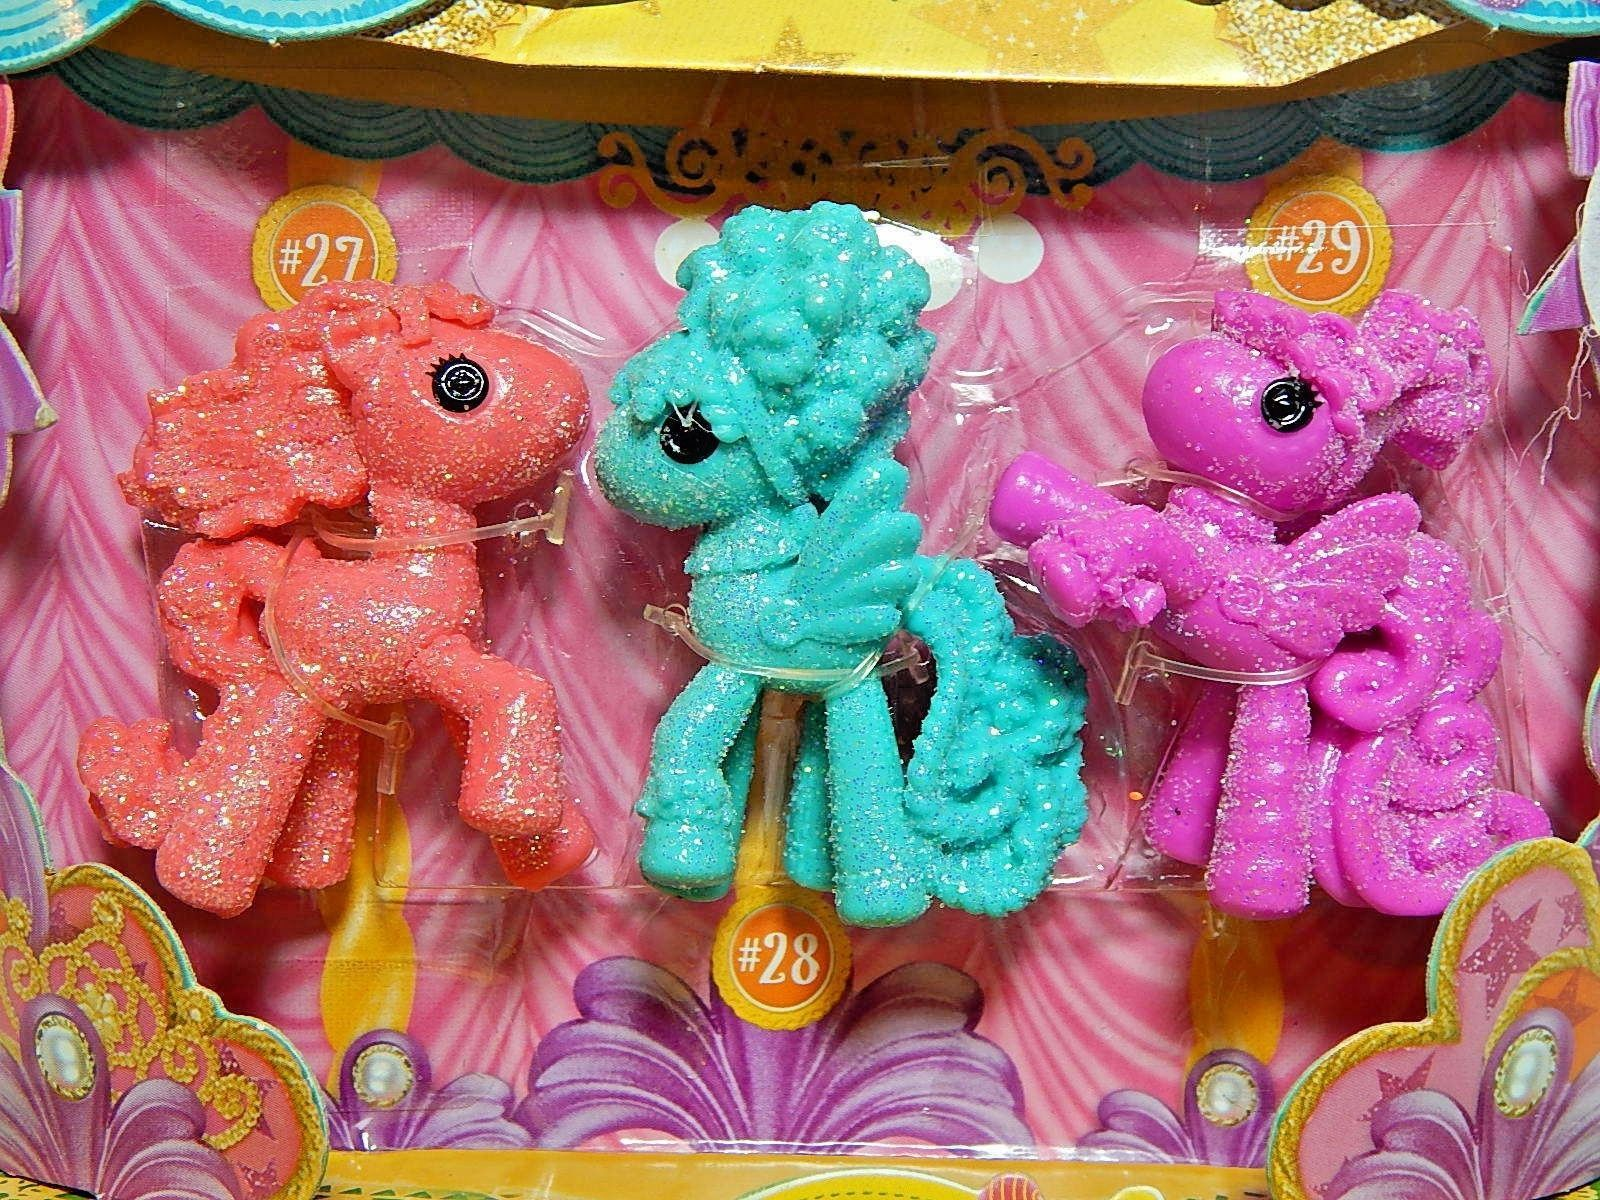 Lalaloopsy Ponies - Carousel 9 (3 Pack) and 27 similar items